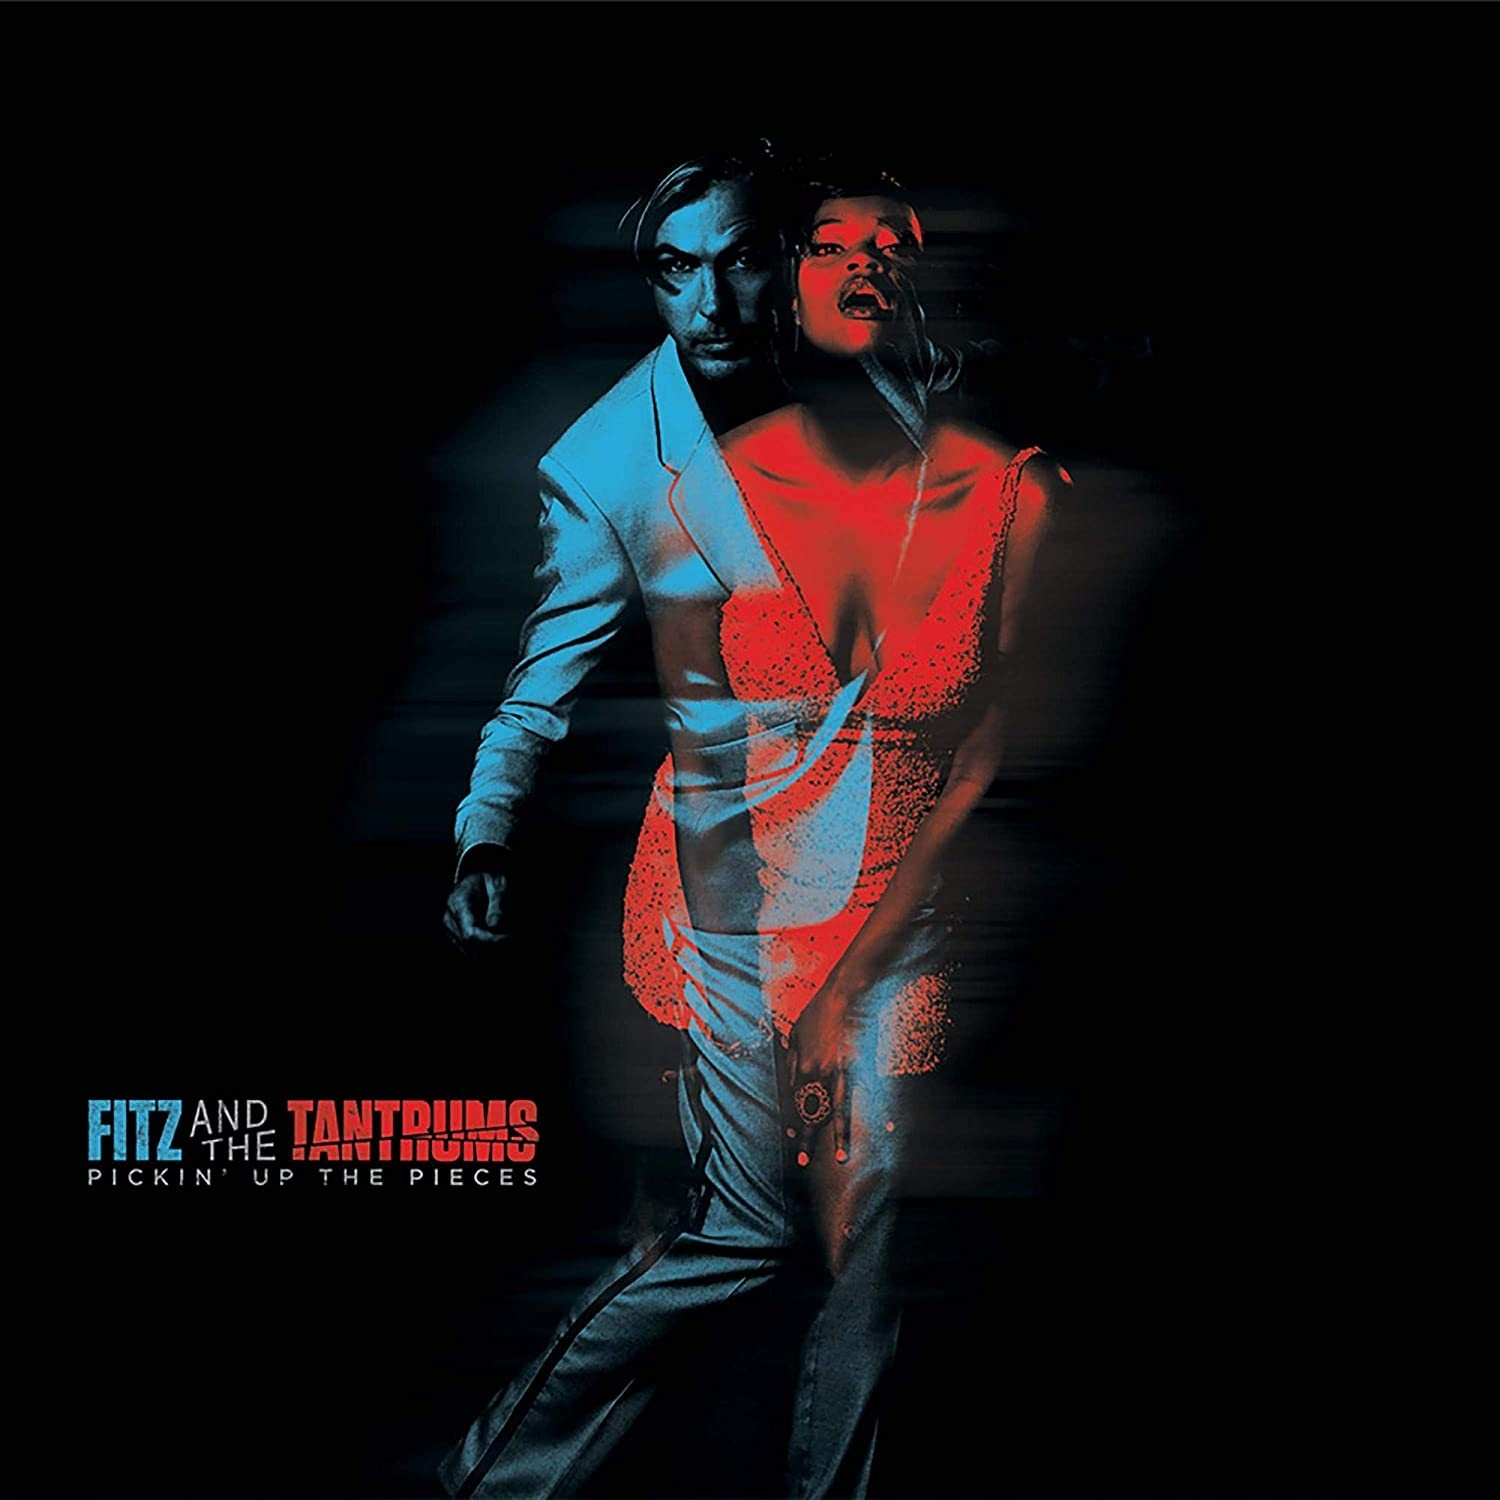 Fitz & Tantrums - Pickin Up The Pieces (Pink) Vinyl LP